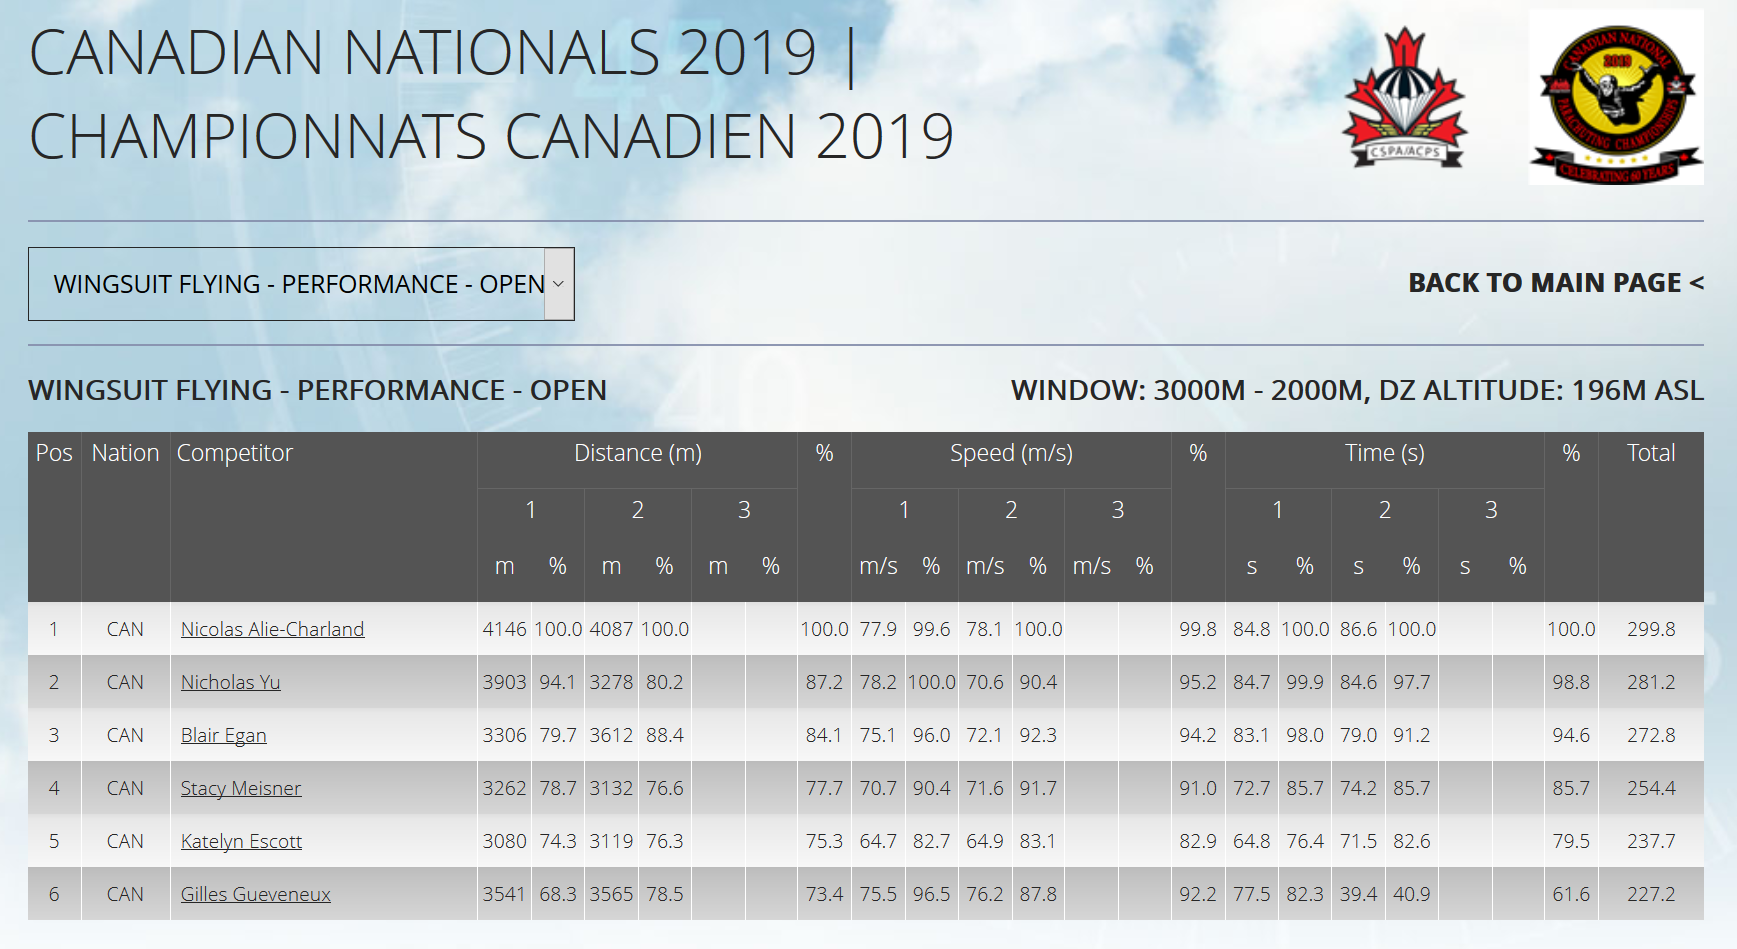 InTime-Scoring-Canadian-Nationals-2019-_-Championnats-Canadien-2019